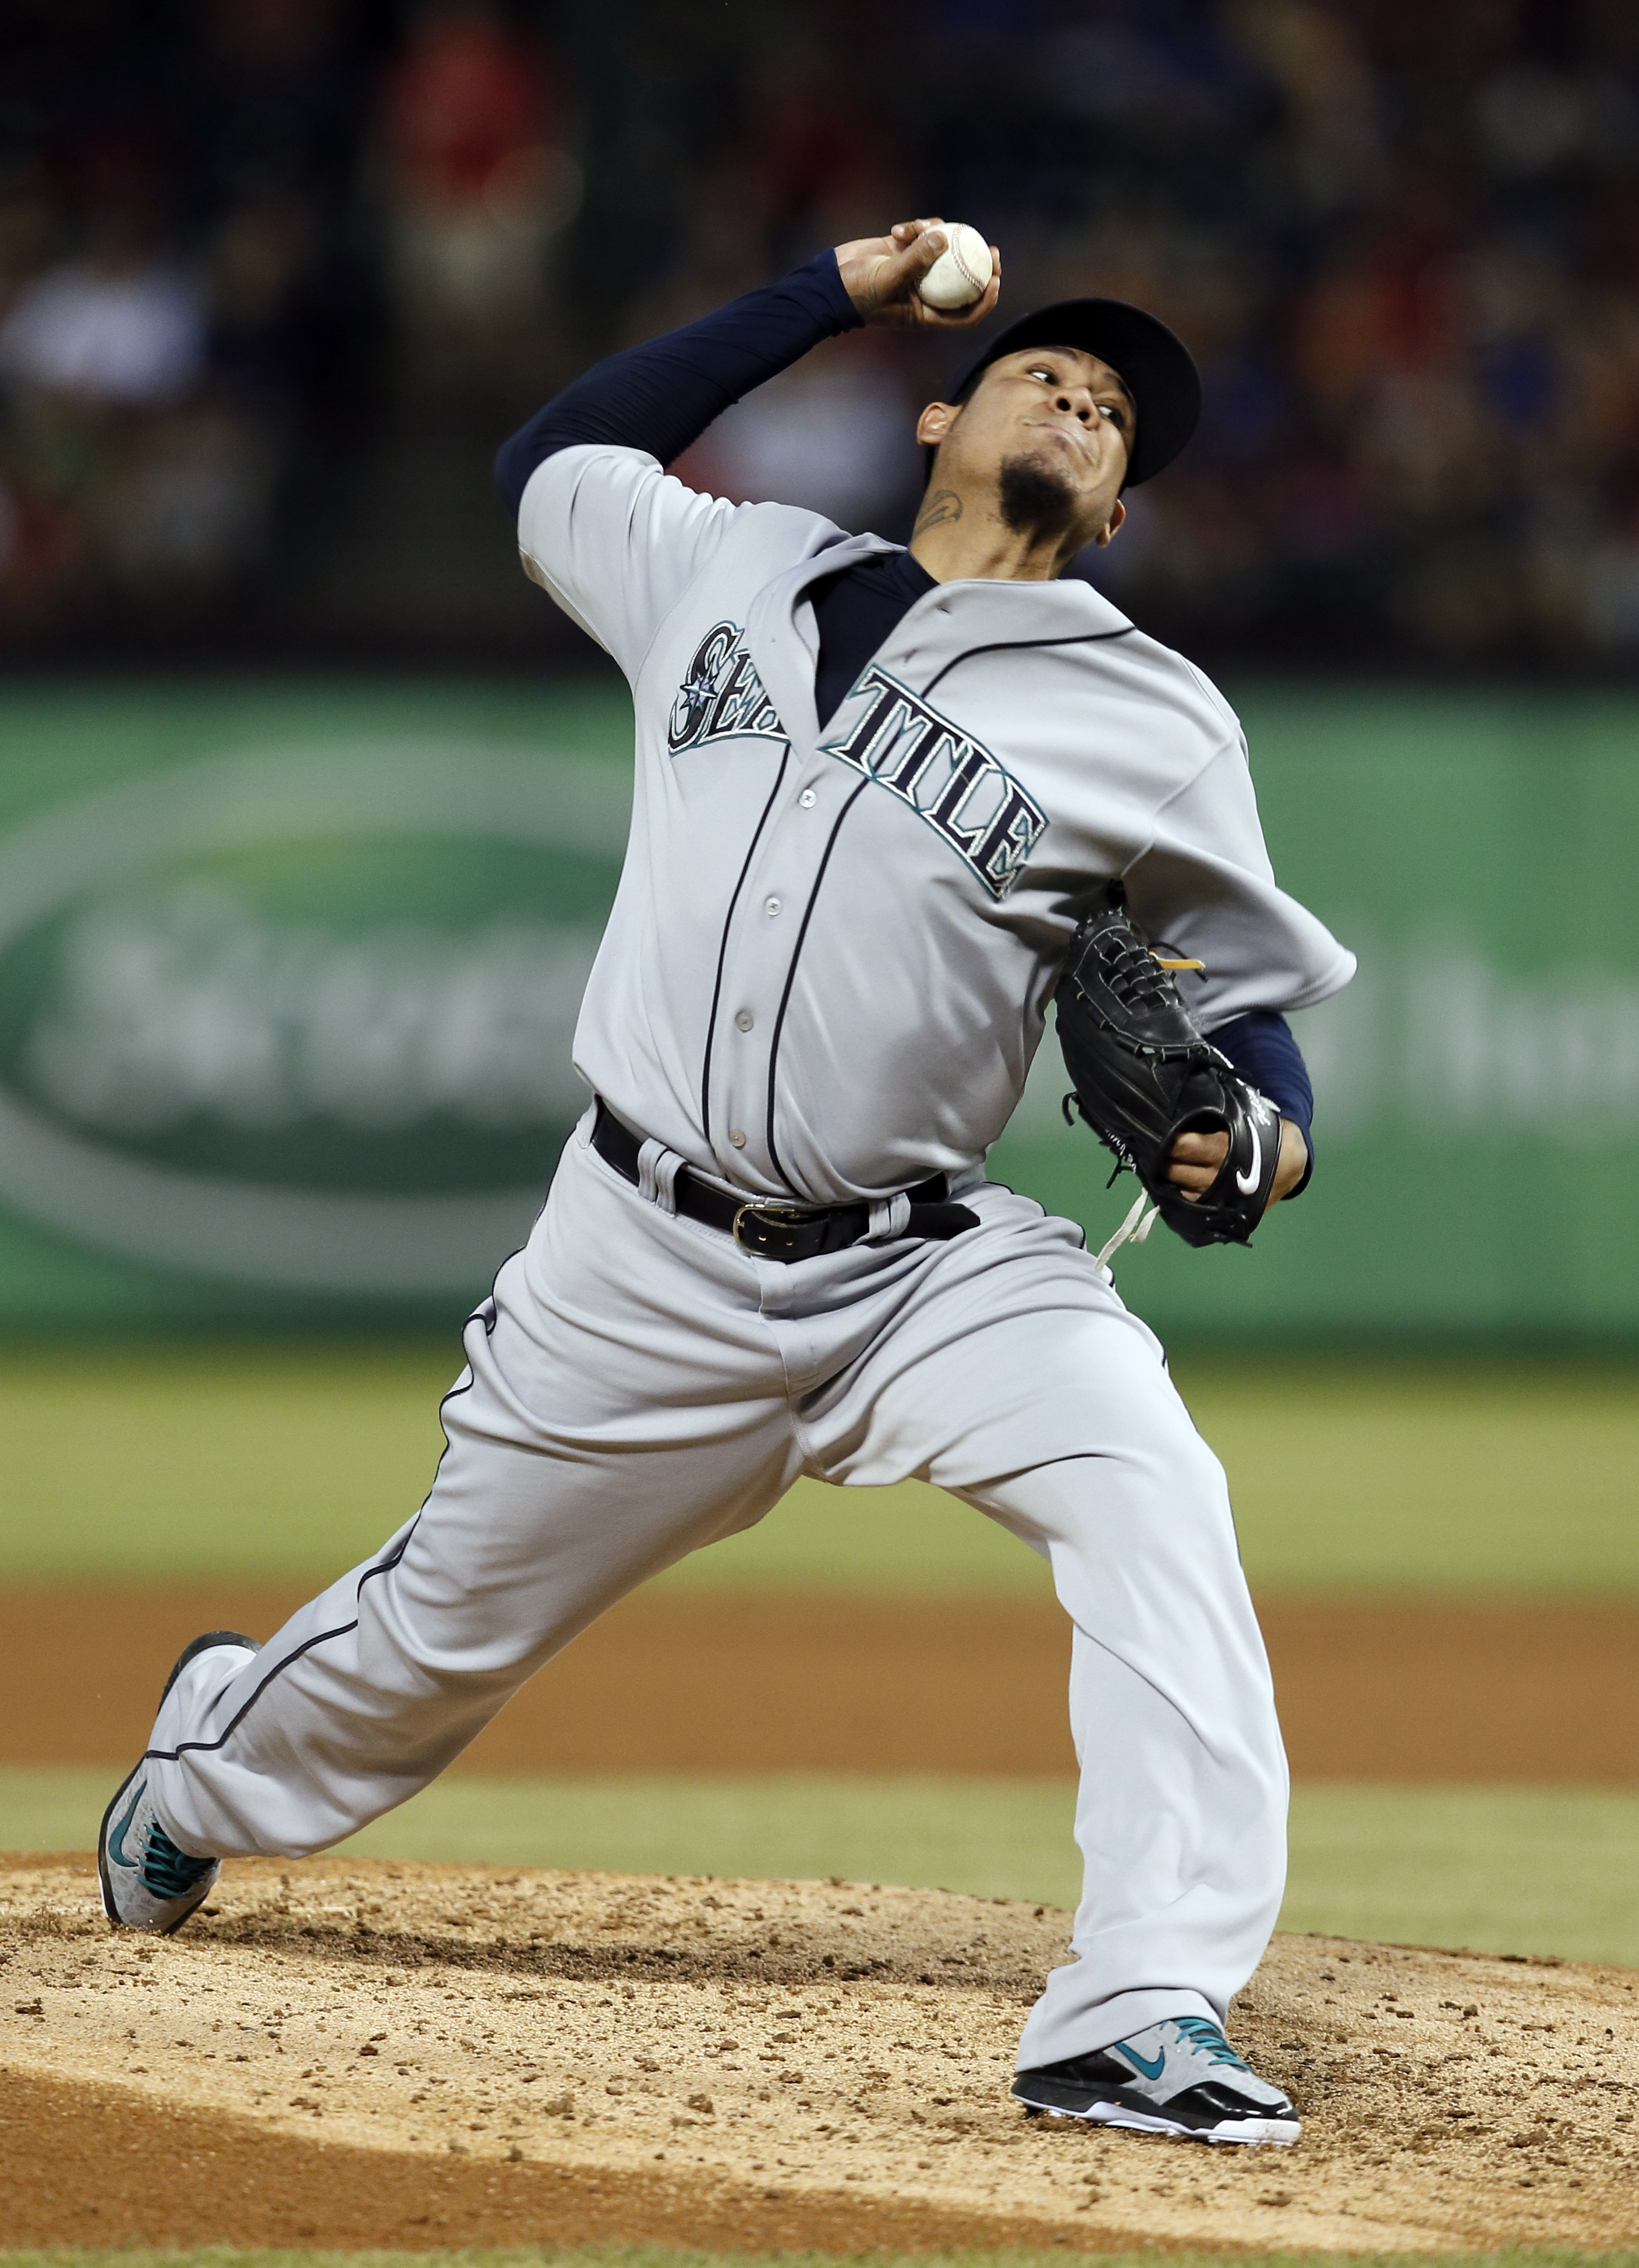 Seattle Mariners starting pitcher Felix Hernandez throws against the Texas Rangers in the fourth inning of a baseball game Wednesday, April 29, 2015, in Arlington, Texas. (AP Photo/Tony Gutierrez)